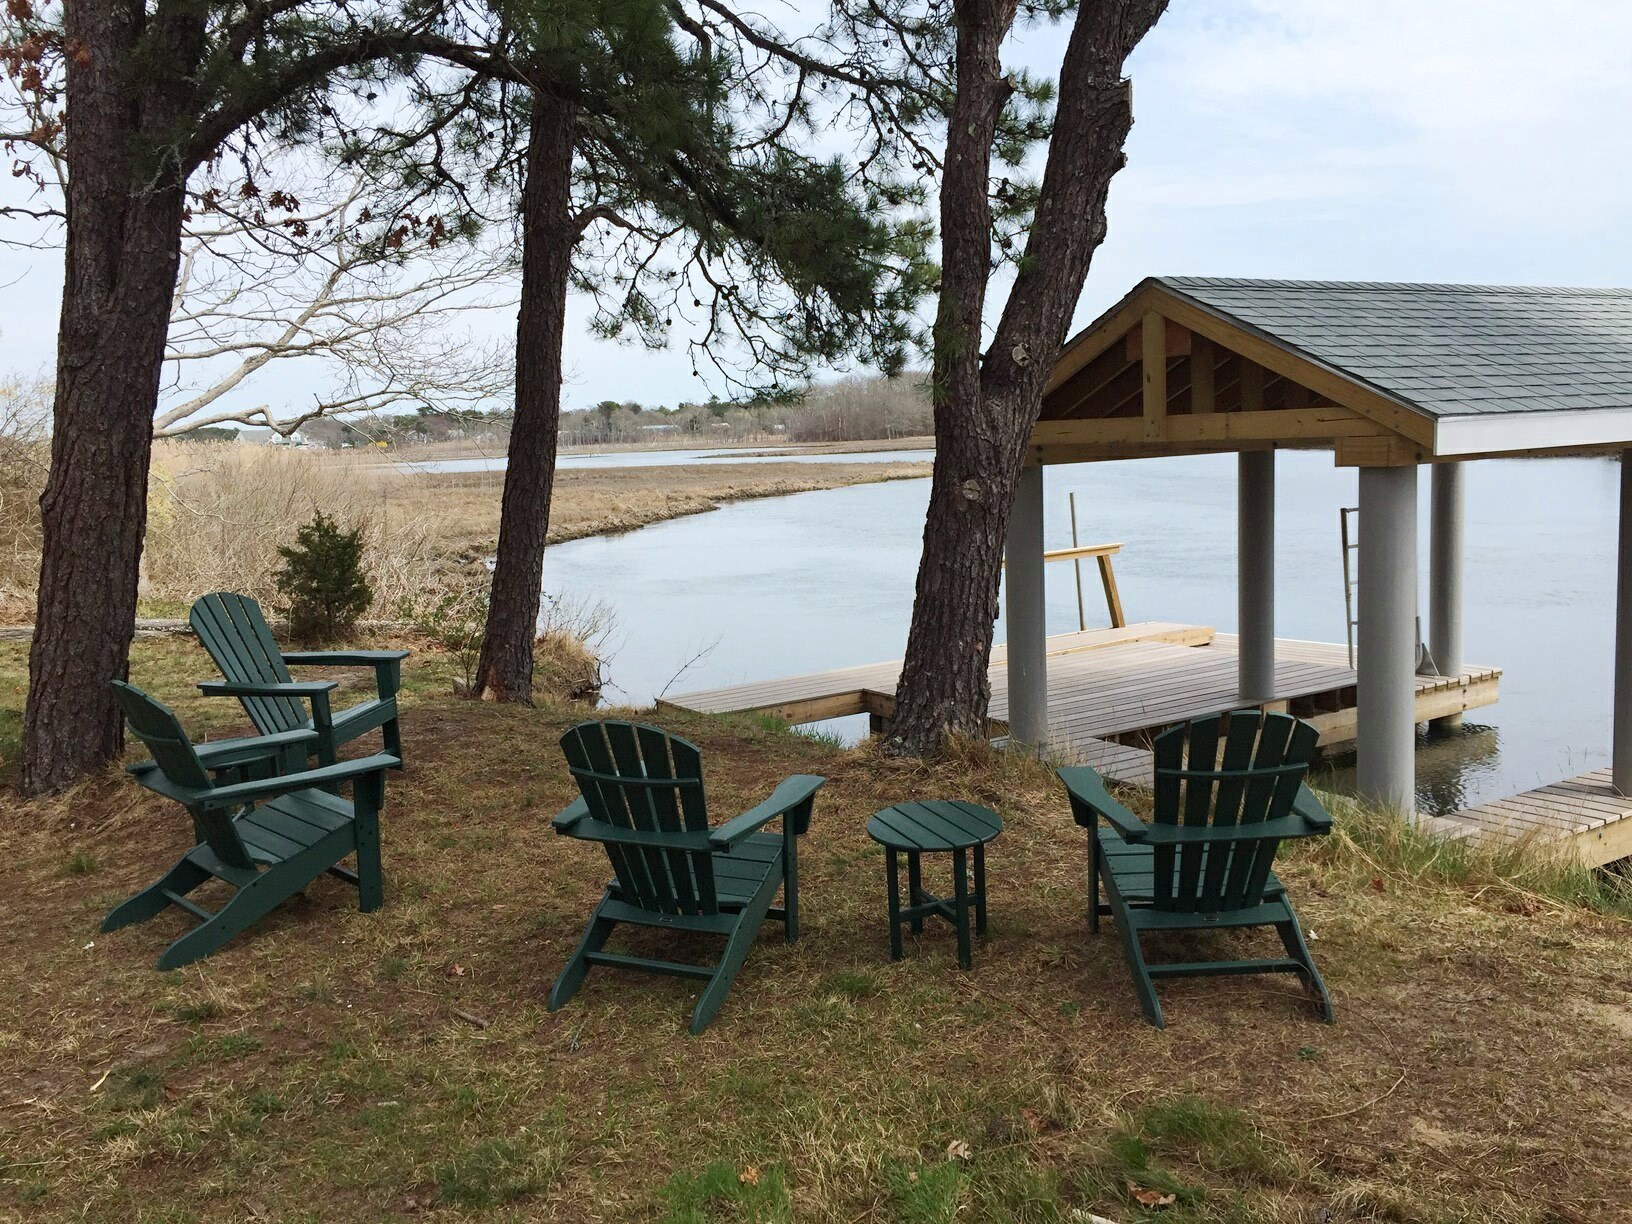 Swan River and dock at 5 Barnacle Way, So. Dennis, MA 02660